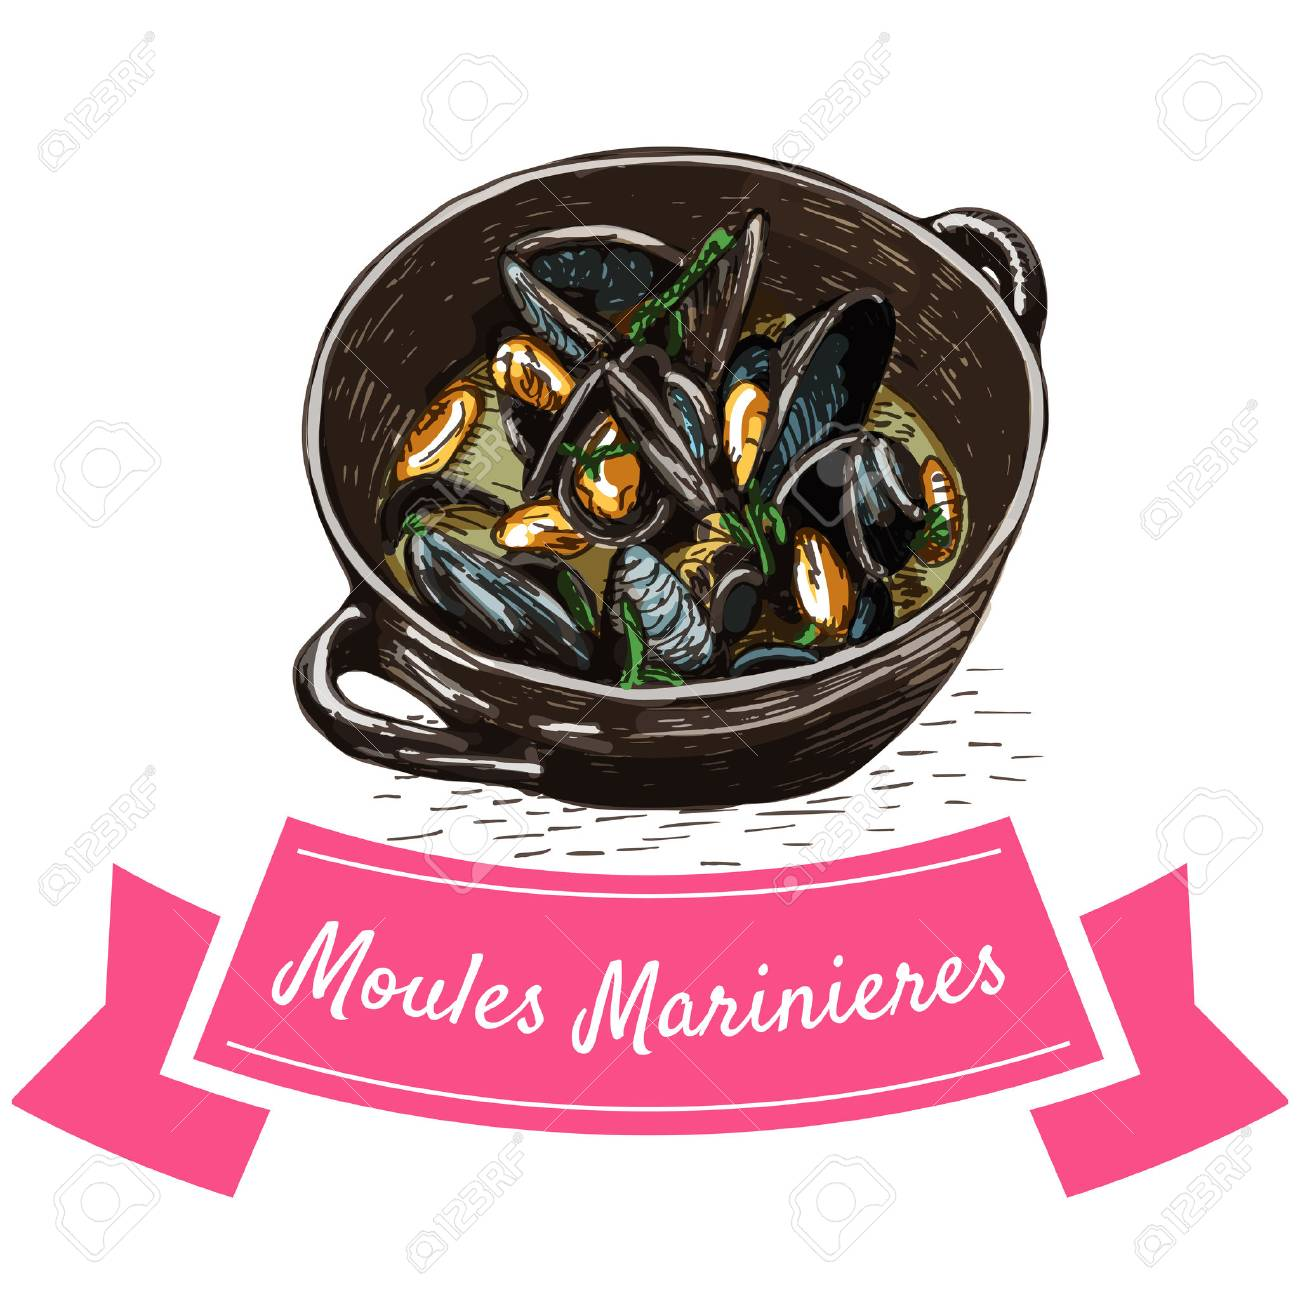 Moules Marinieres Colorful Illustration Vector Illustration